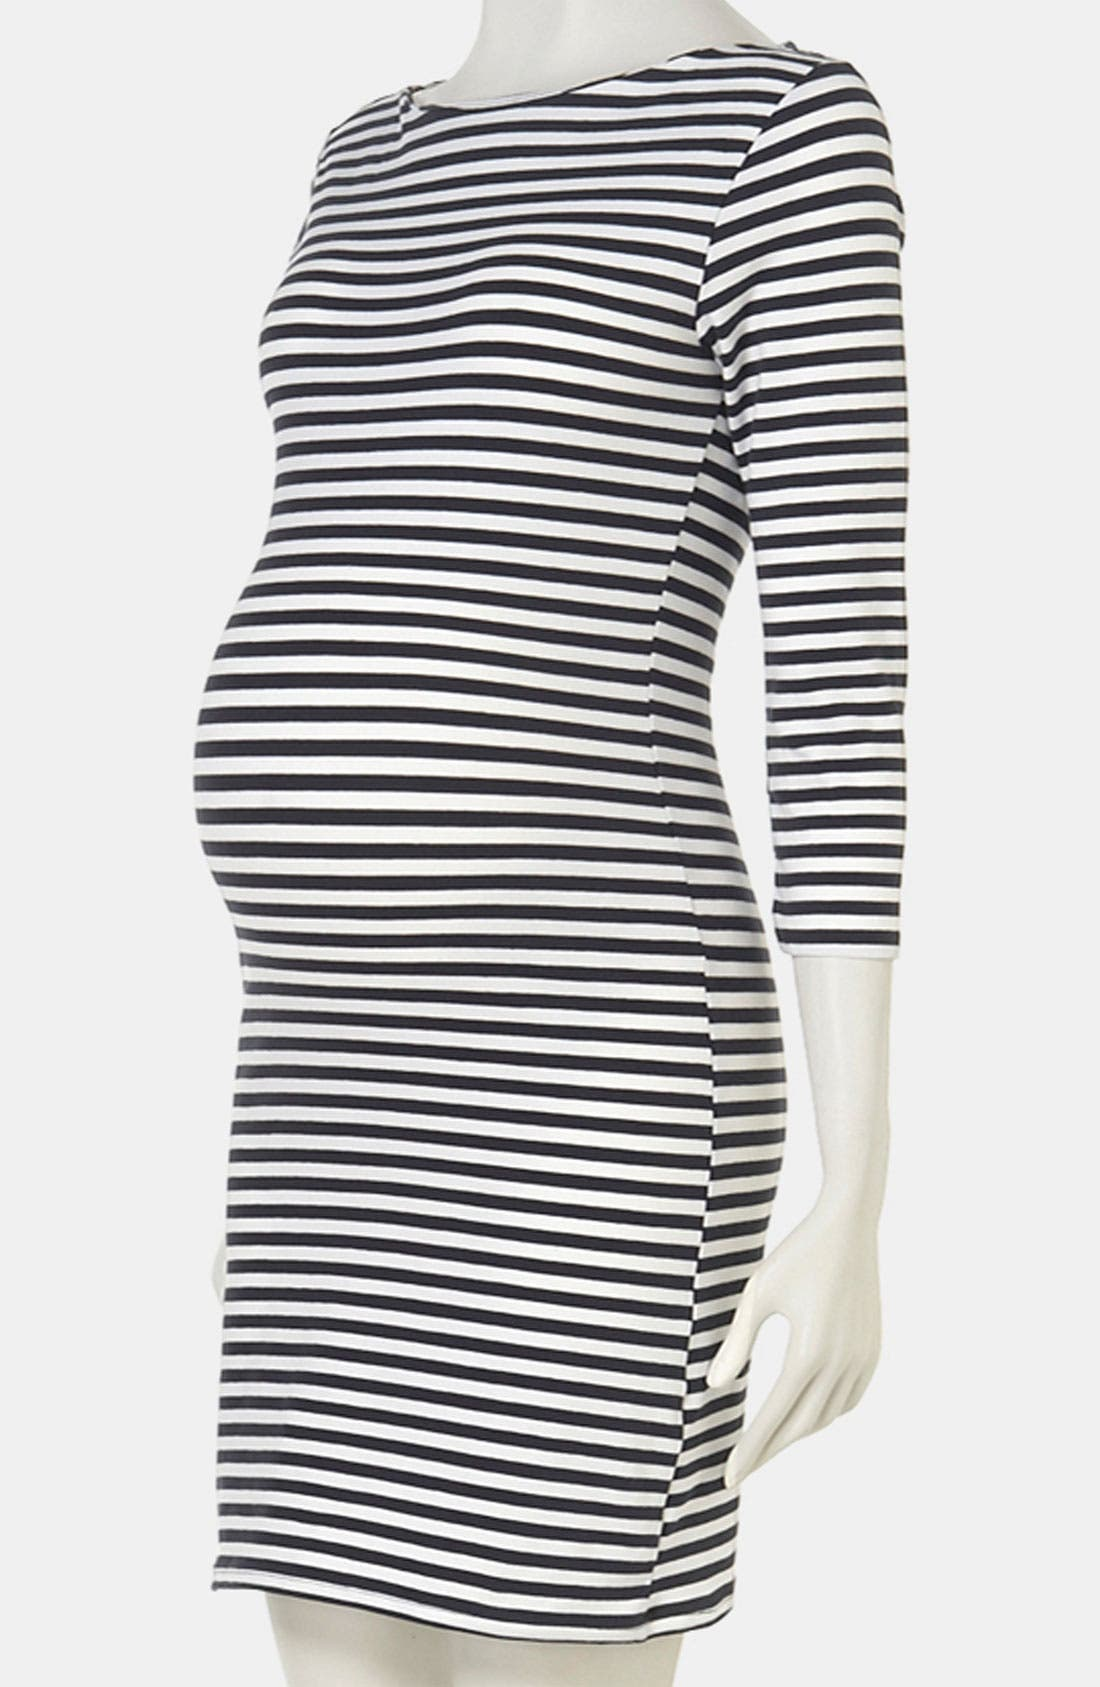 Main Image - Topshop Stripe Maternity Dress